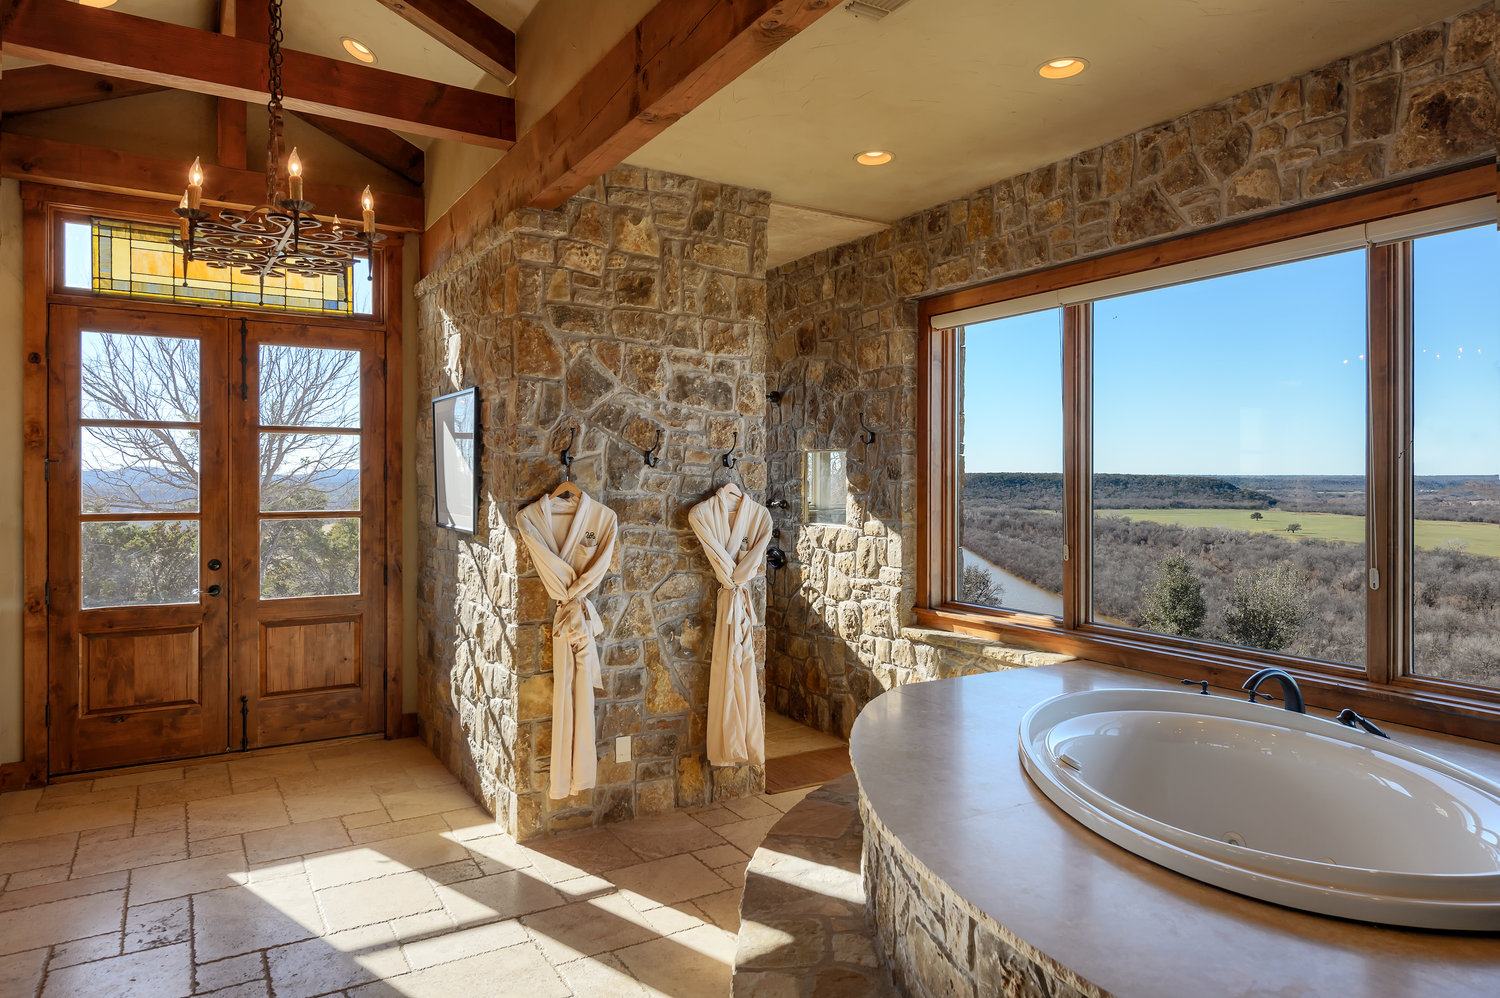 A Gorgeous Bathroom with a View